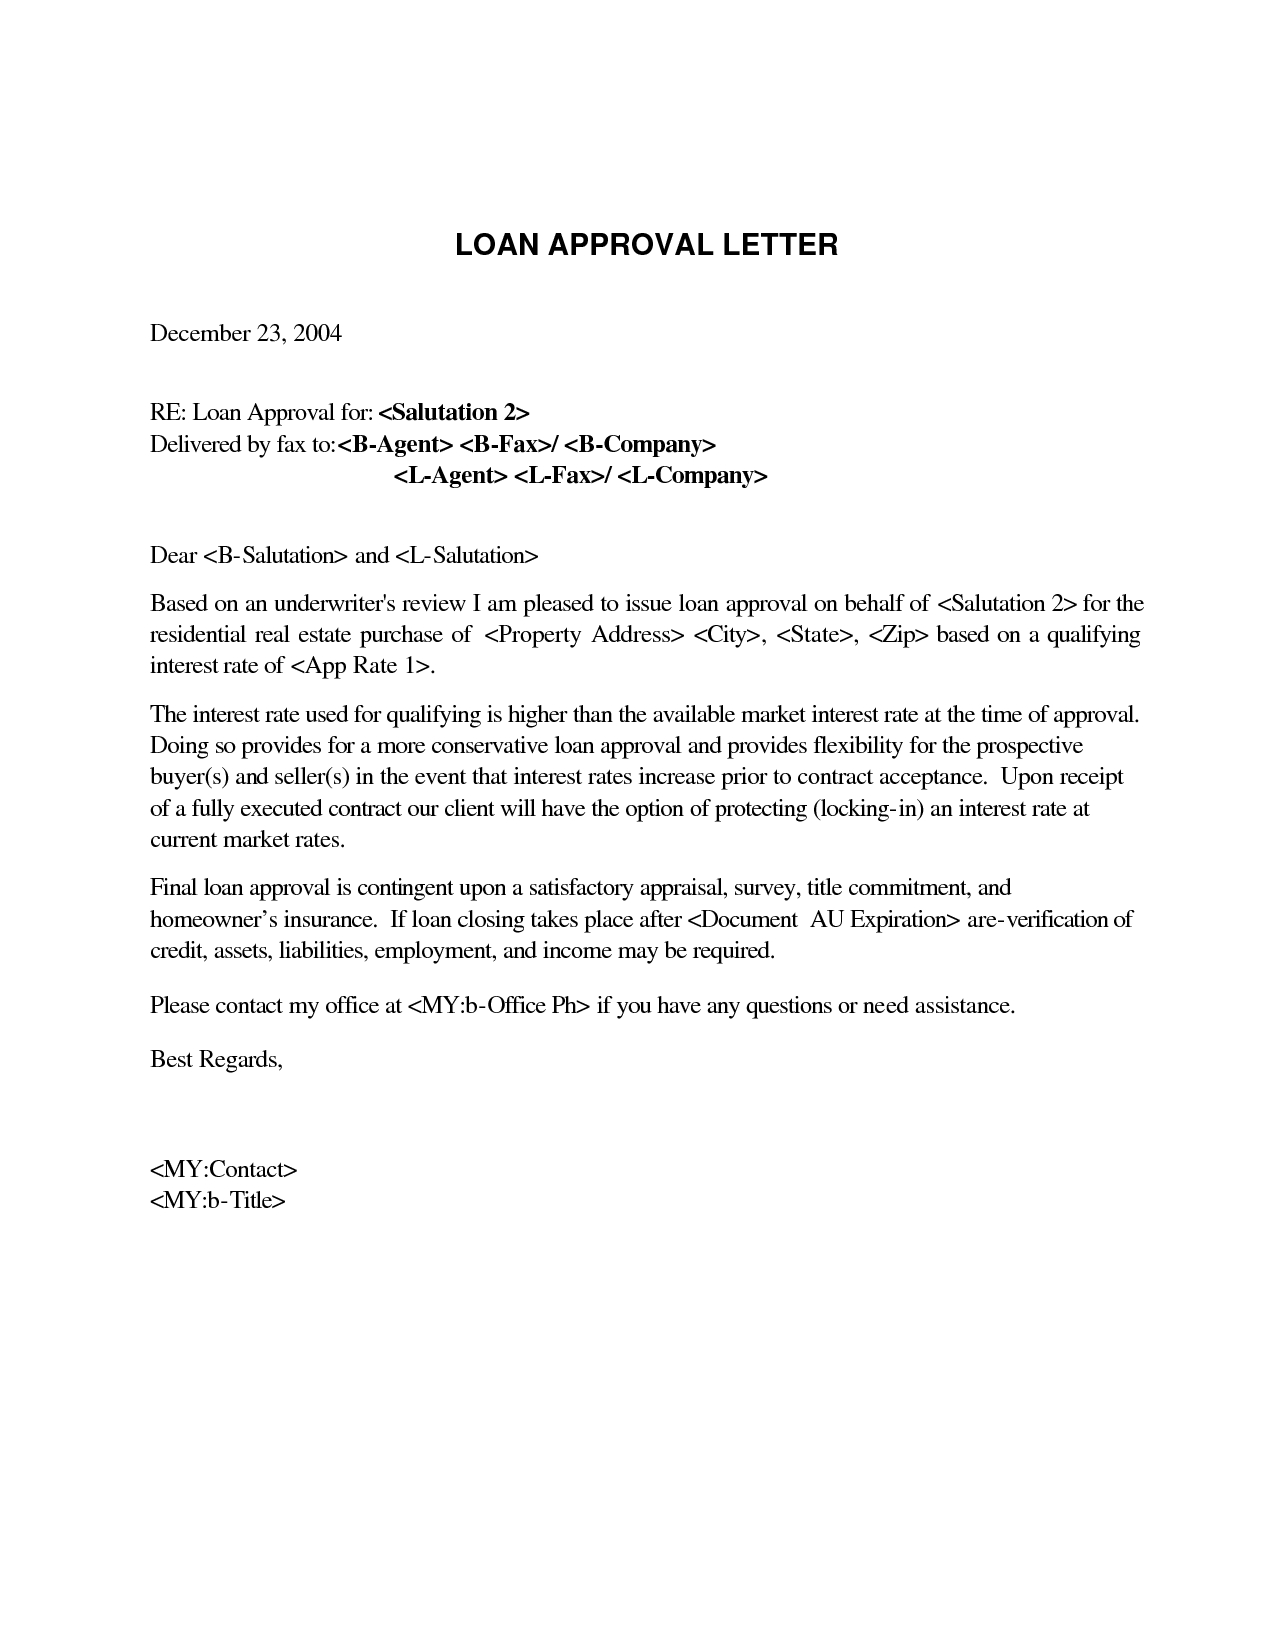 Mortgage Pre Qualification Letter Template - How to Write An Approval Letter Gallery Letter format formal Sample